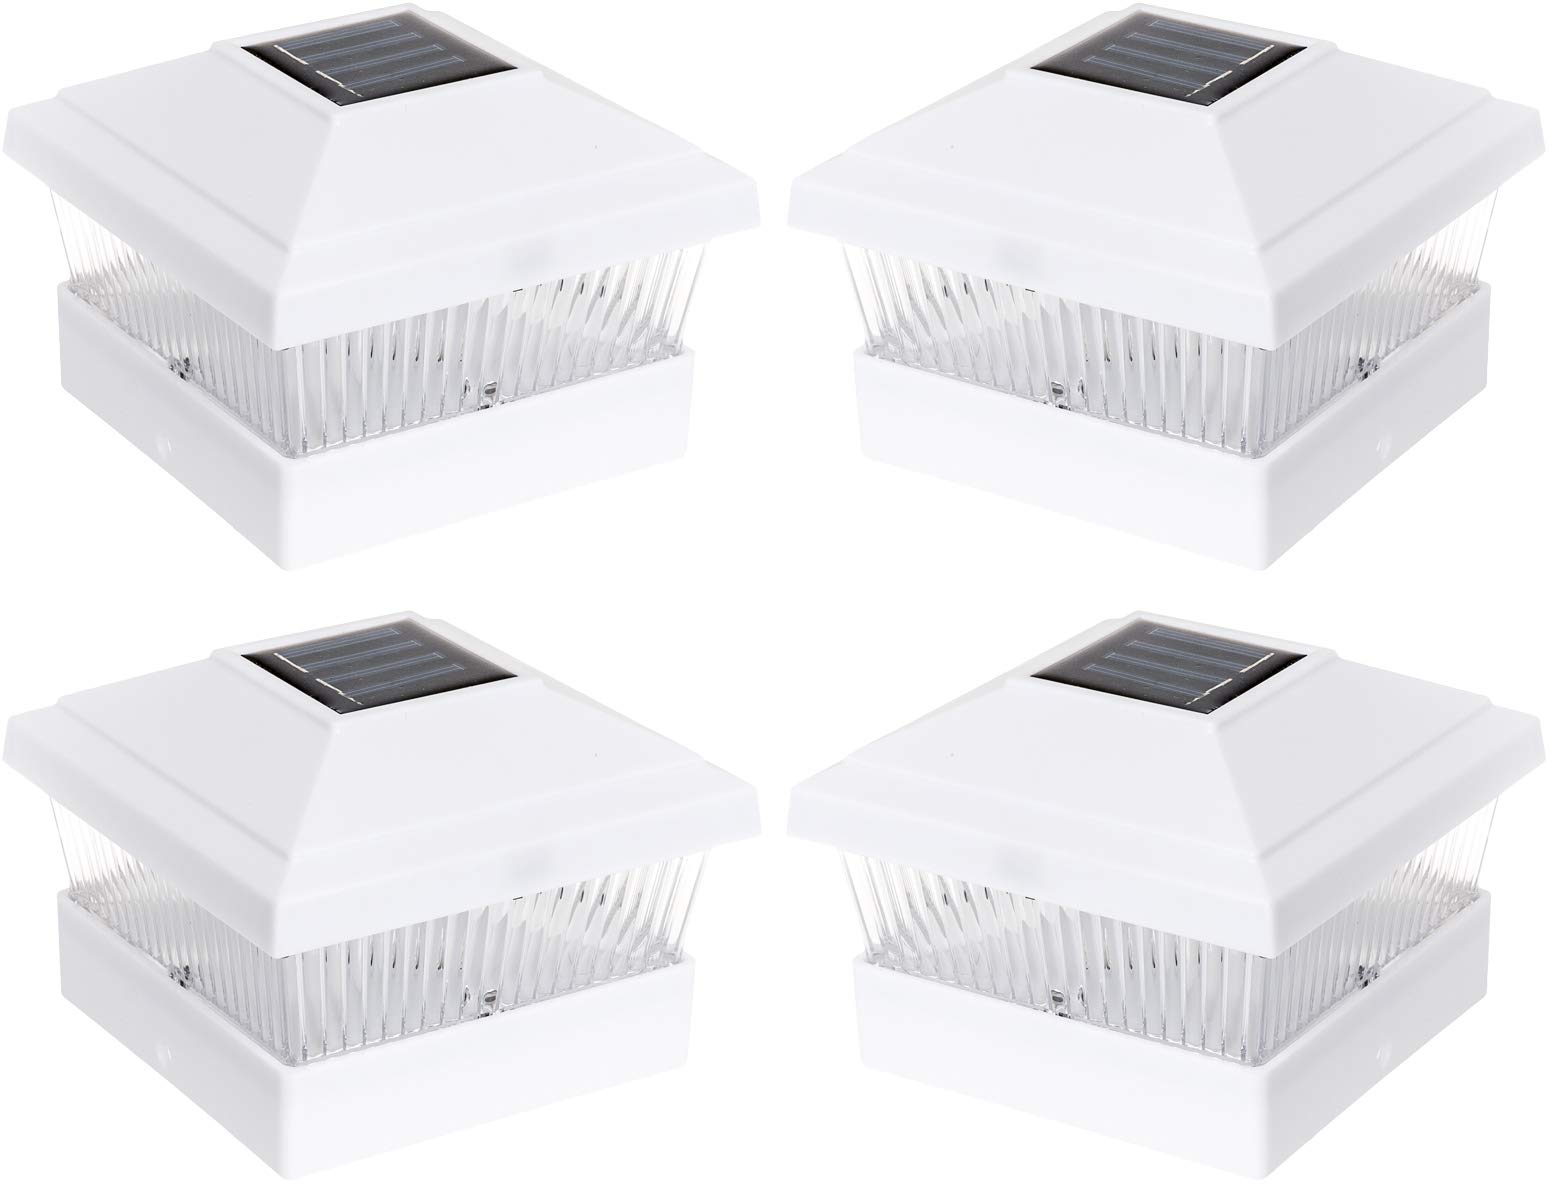 Solar Outdoor Fence Post Cap LED Light for 5 x 5 PVC Posts, White, 4 Pack